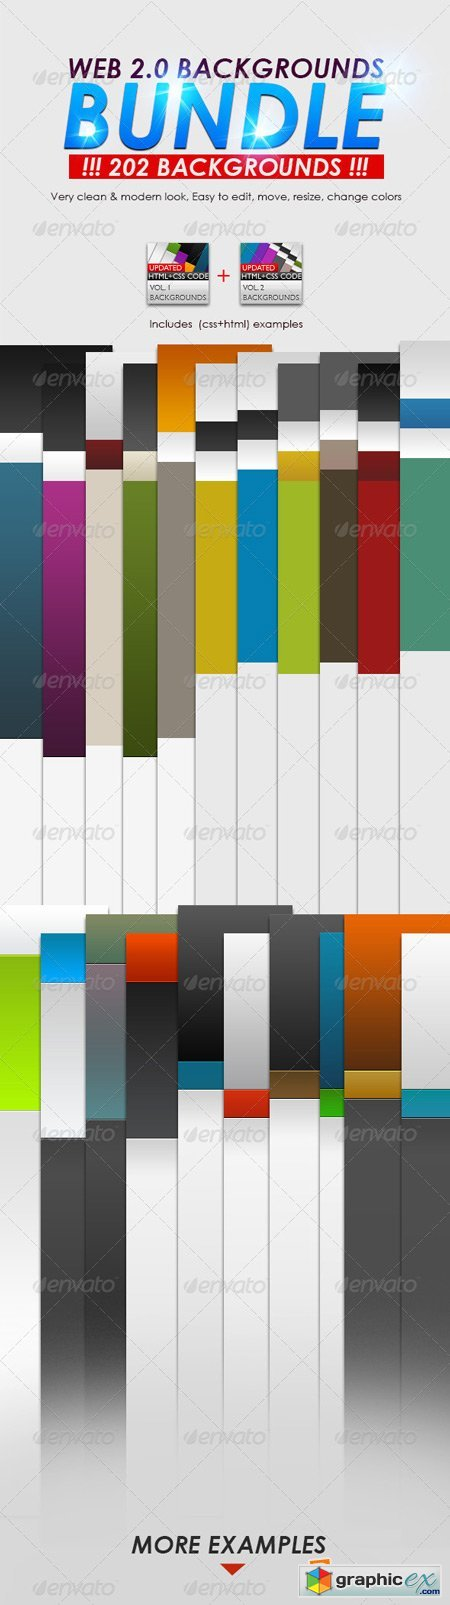 Web 2.0 Backgrounds Bundle 5123666